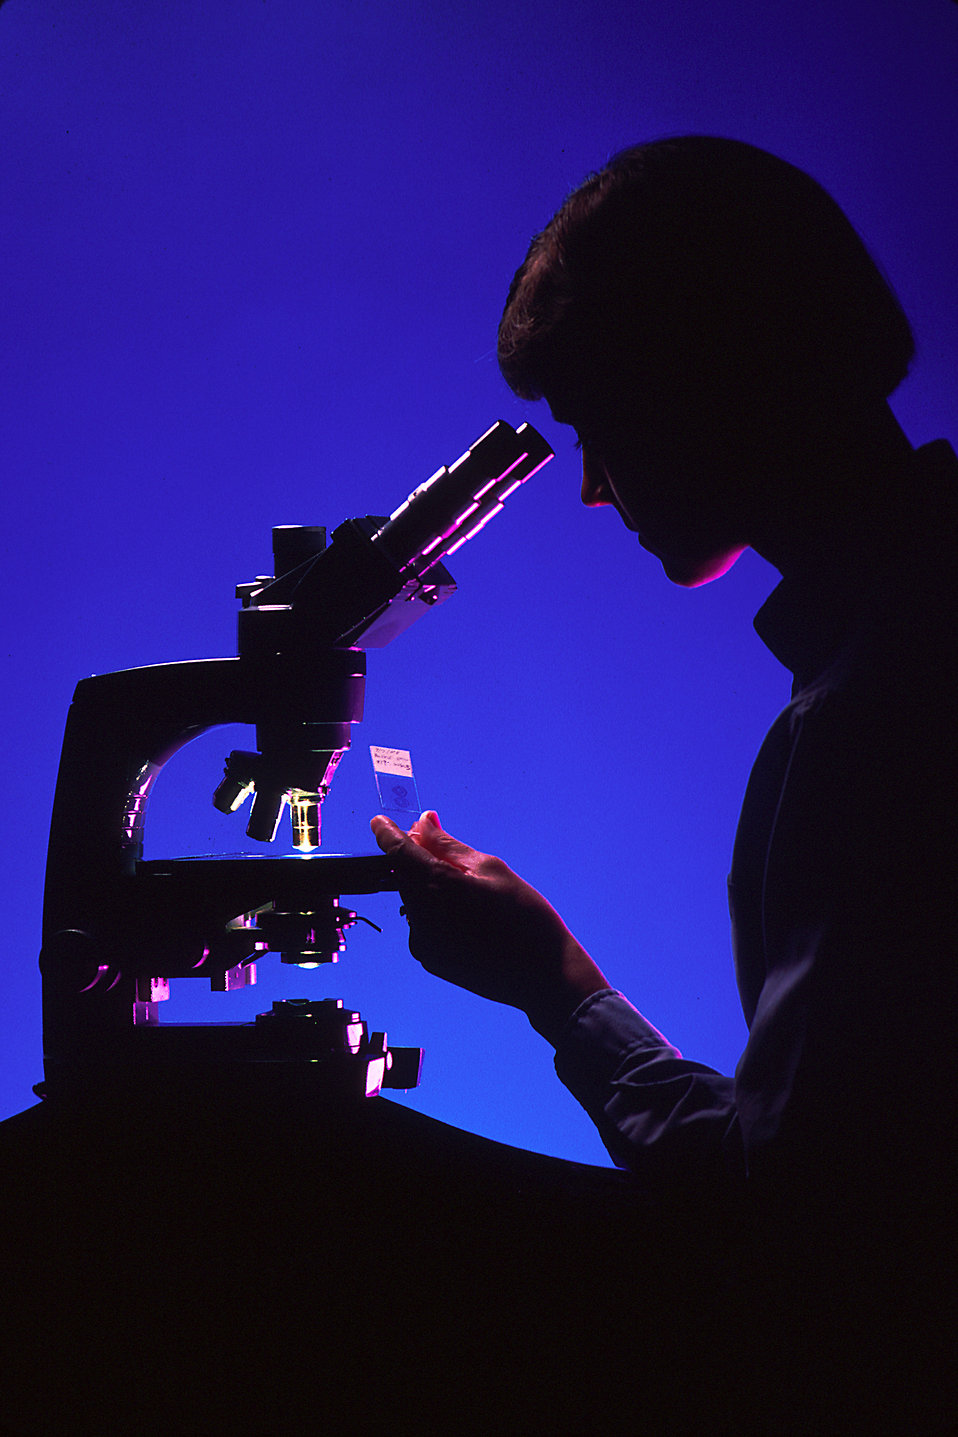 Silhouette of a woman using a microscope : Free Stock Photo